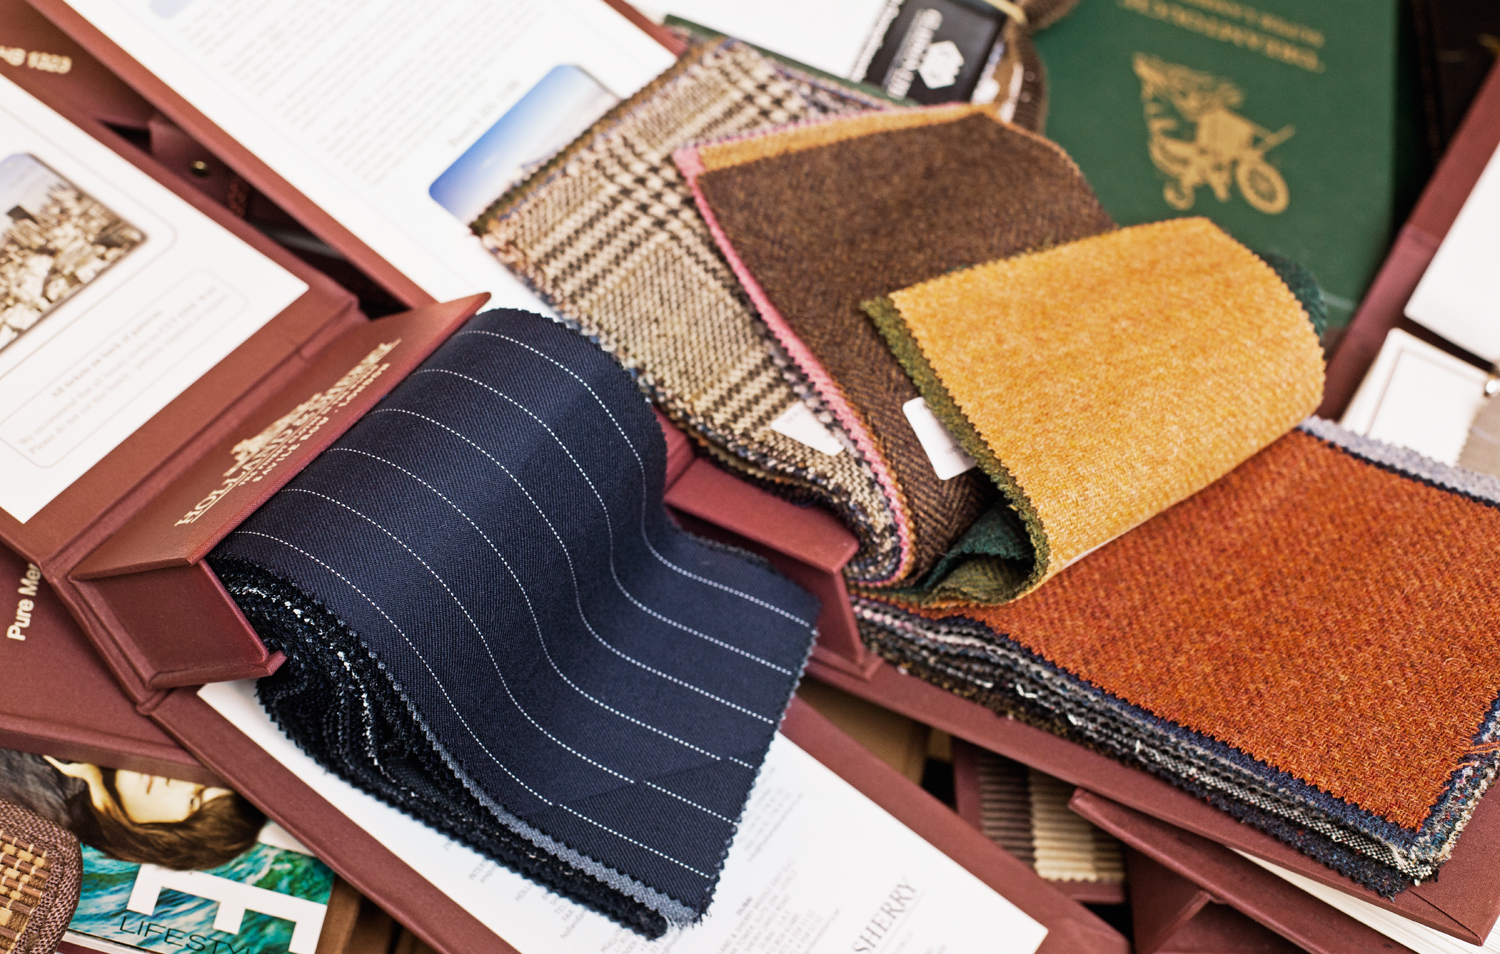 Fabric samples used in Barry Wishnow's bespoke suits.